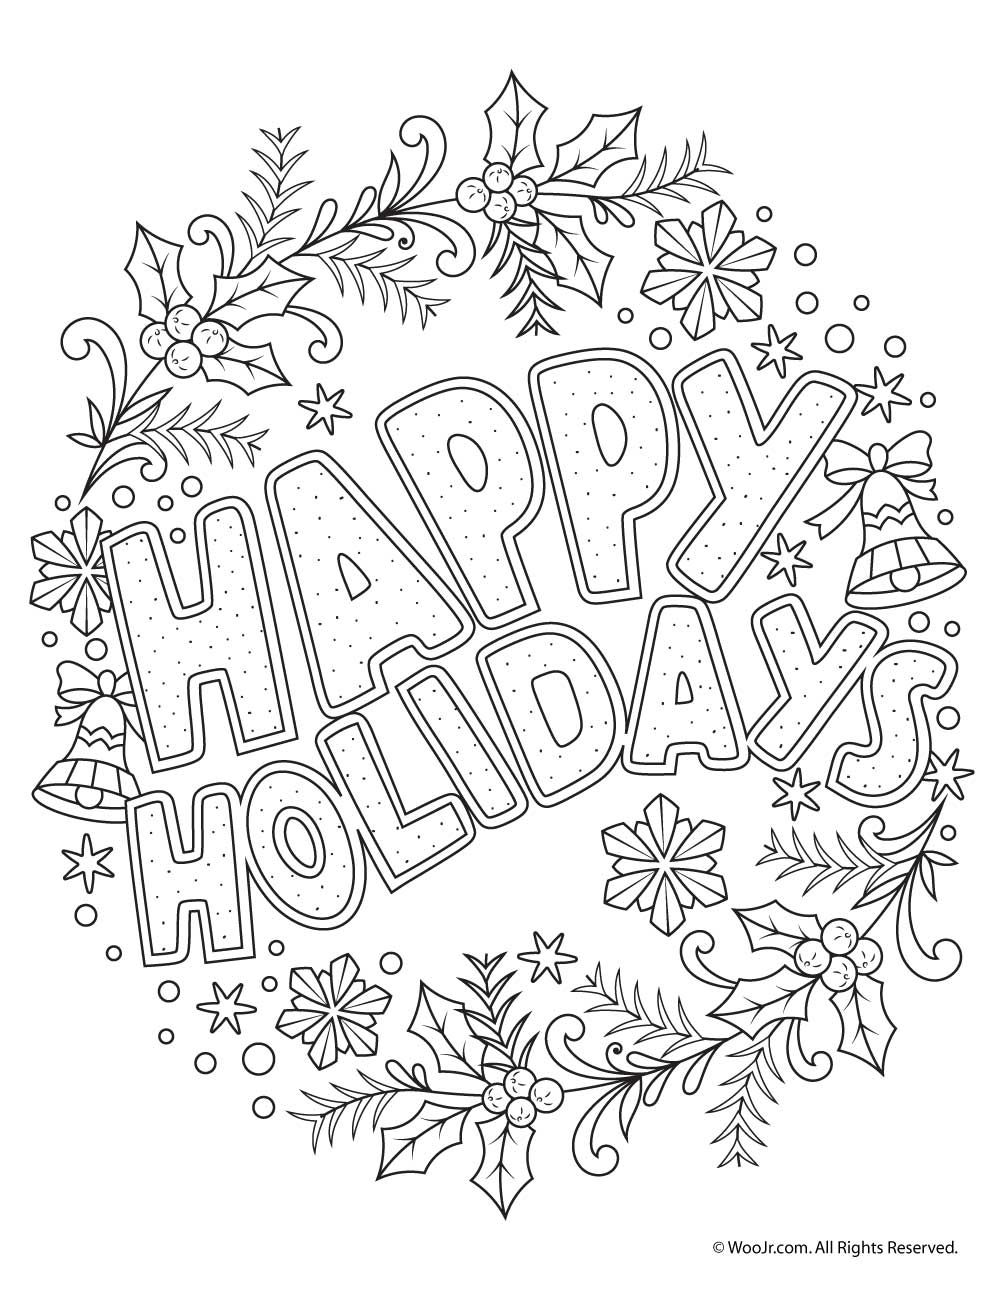 ho iday coloring pages - photo#15